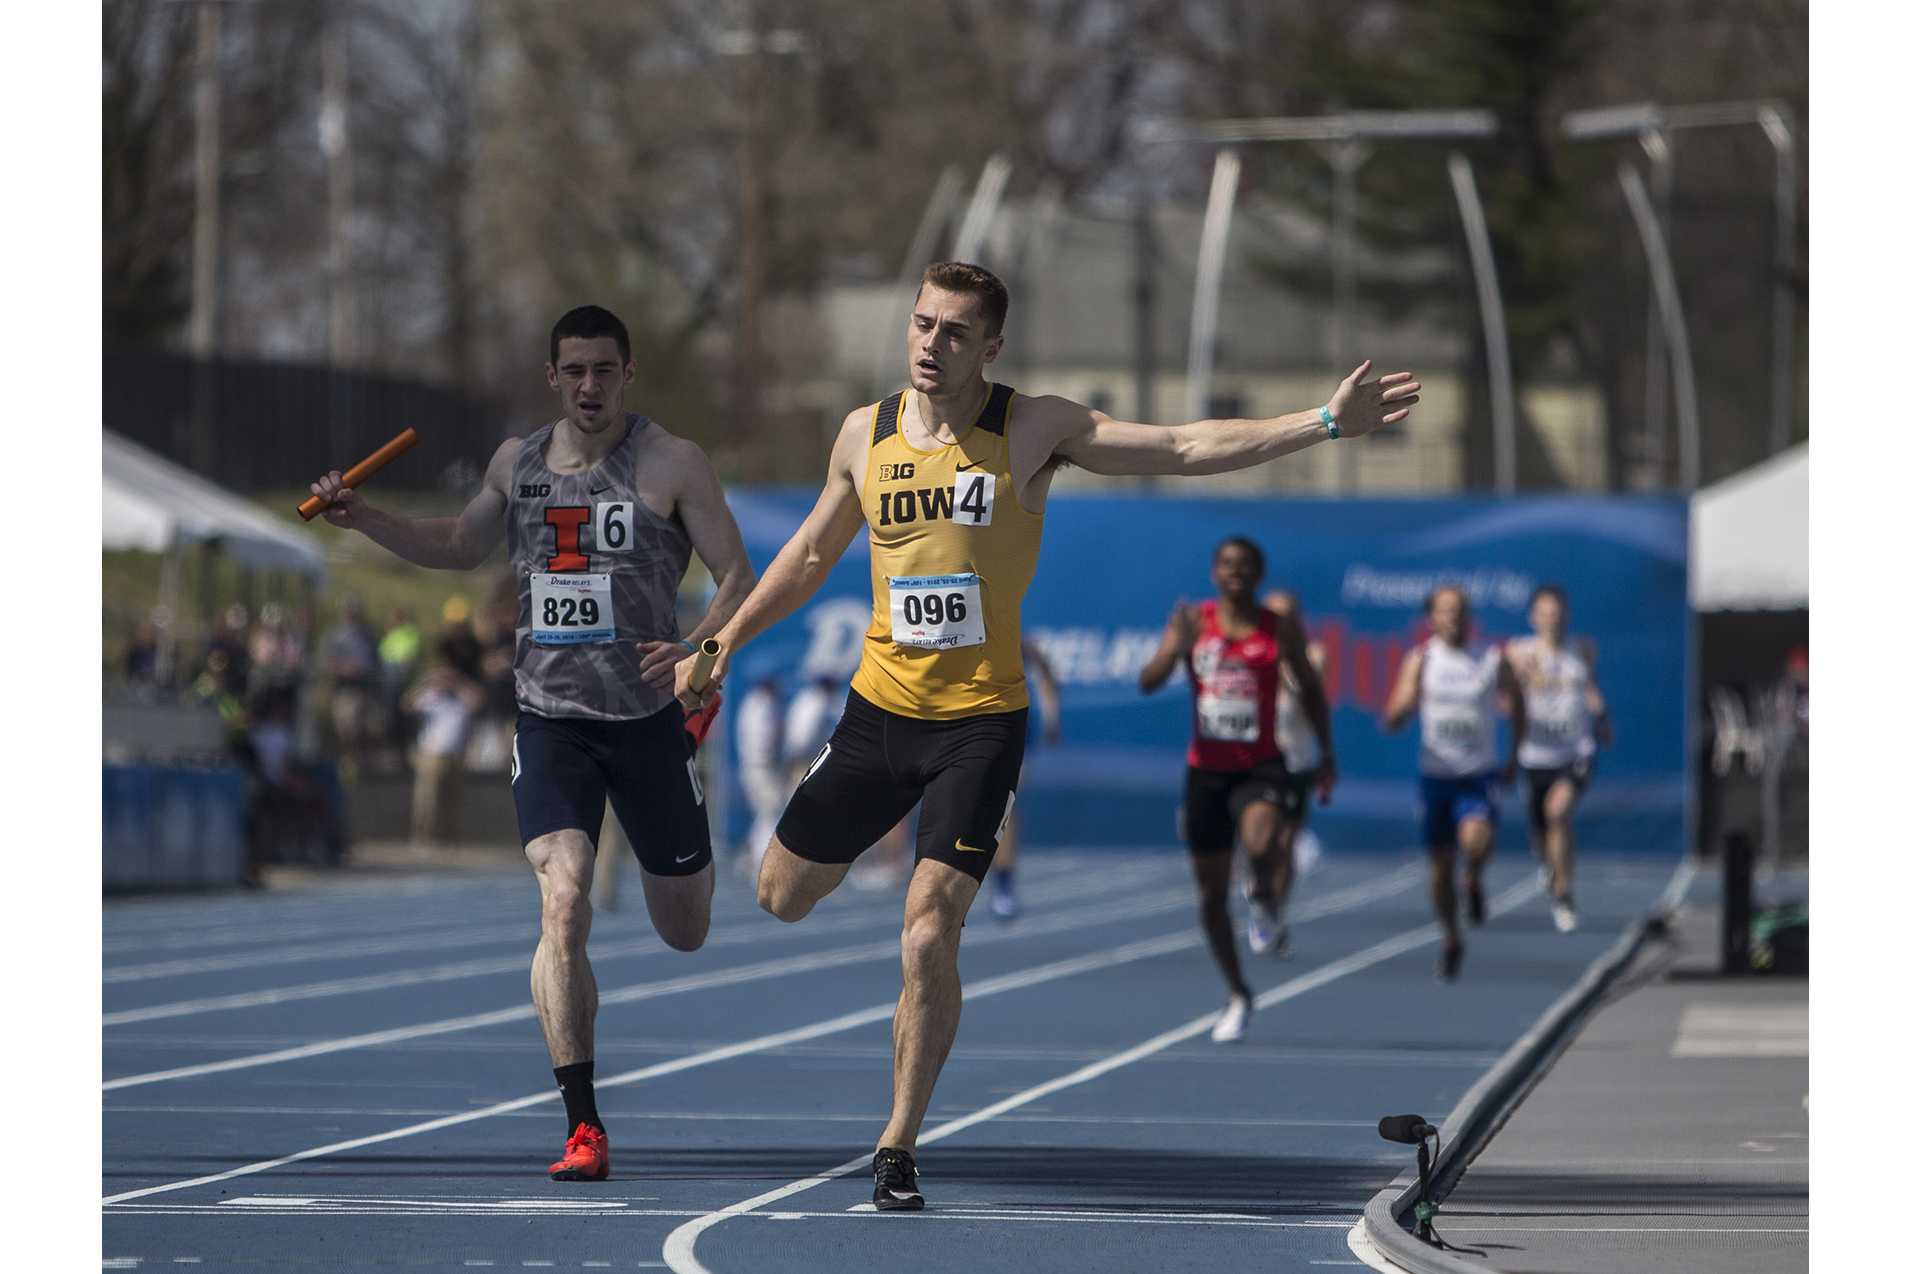 Iowa's Collin Hofacker finishes the final stretch of the mens' 4x400 meter relay during the 2018 Drake Relays at Drake Stadium in Des Moines, Iowa on Friday, April 27, 2018. Iowa placed first in the event with a time of 3:08.67. (Ben Allan Smith/The Daily Iowan)